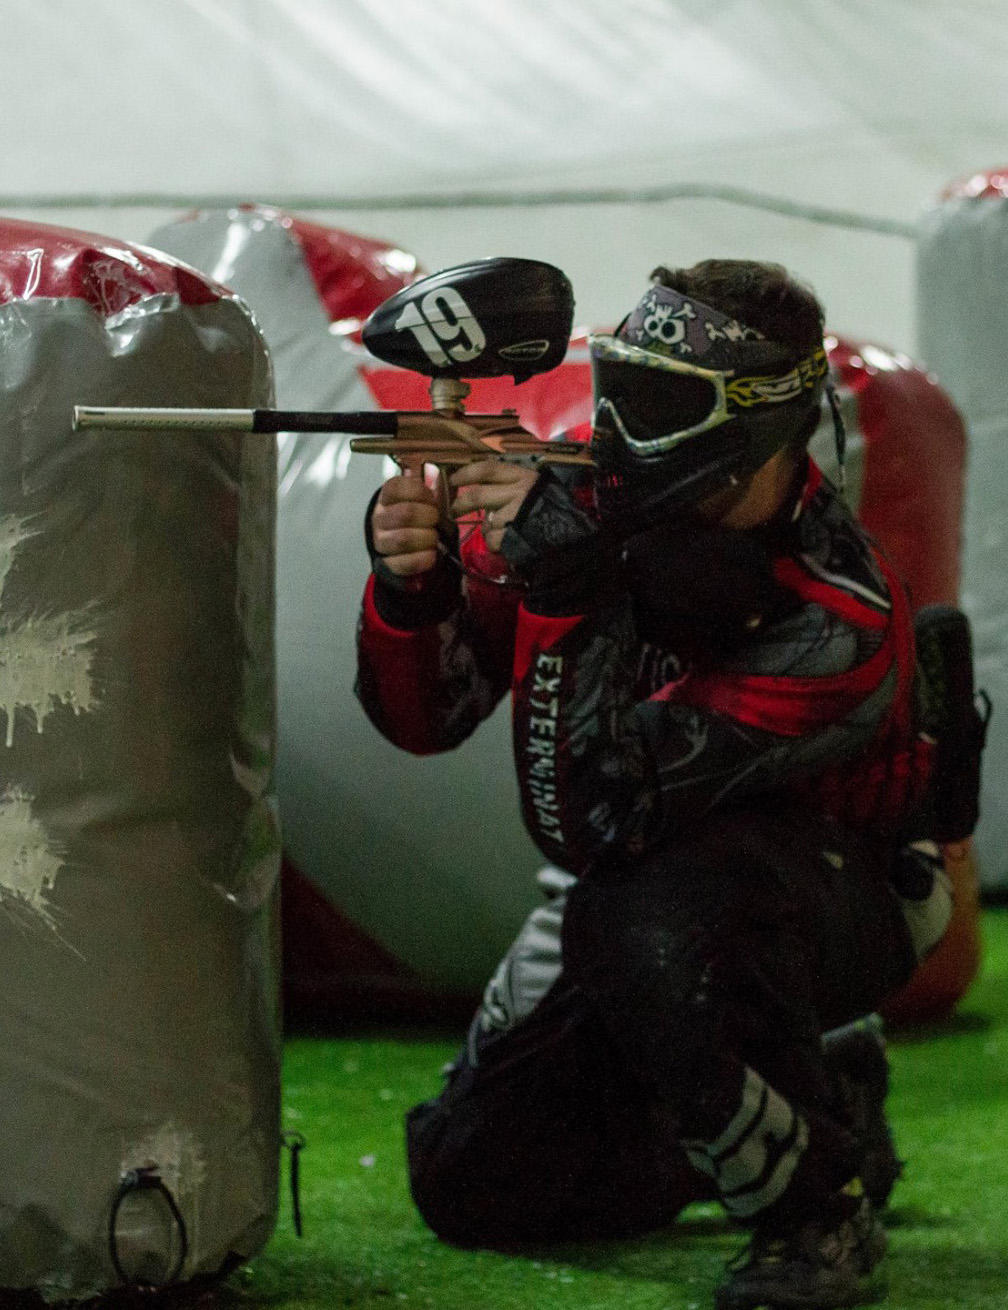 OHare Paintball Park image 1